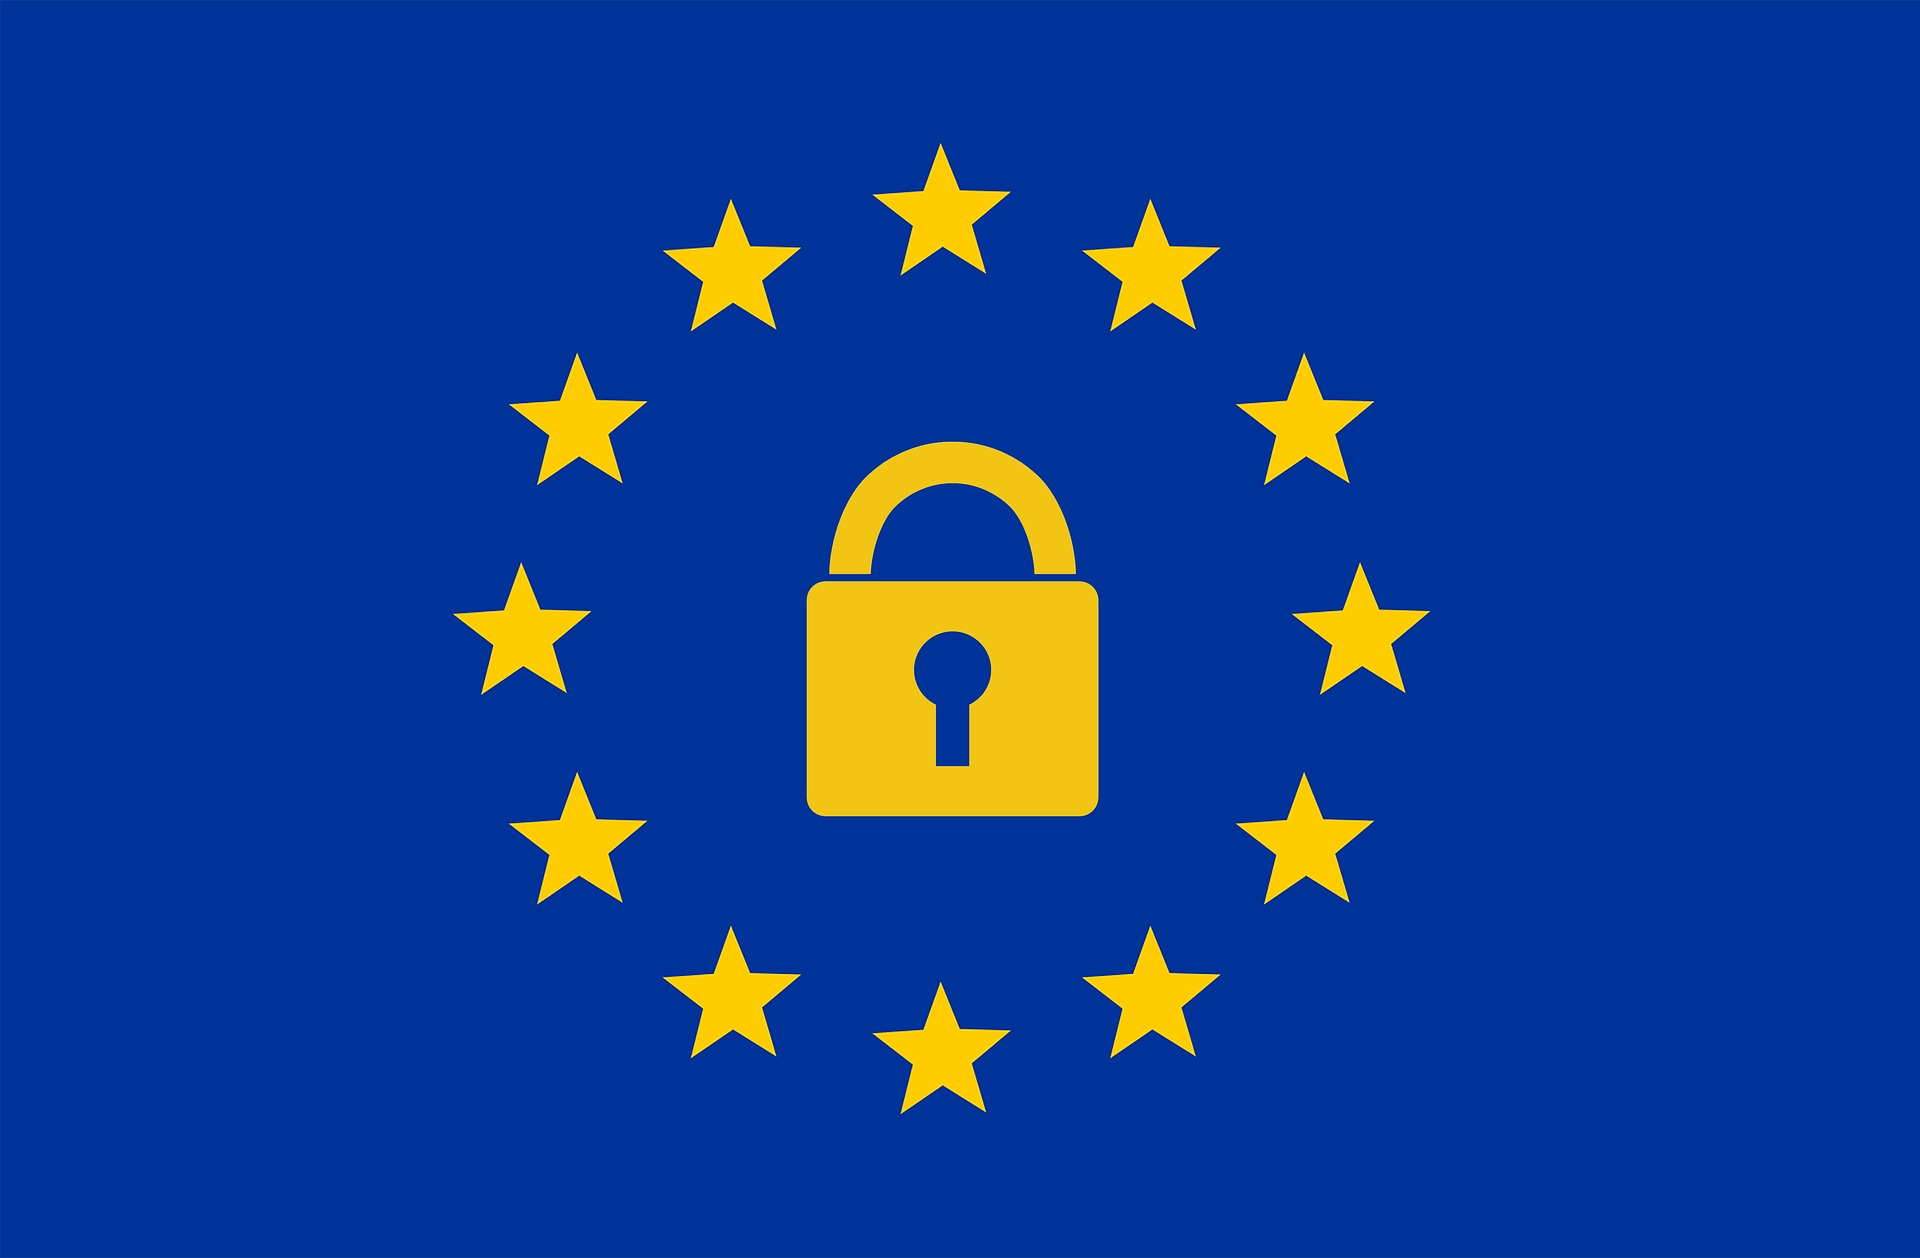 ICCA takes personal privacy issues very seriously, and has been actively reviewing all policies and practices to comply with the latest European GDPR requirements.